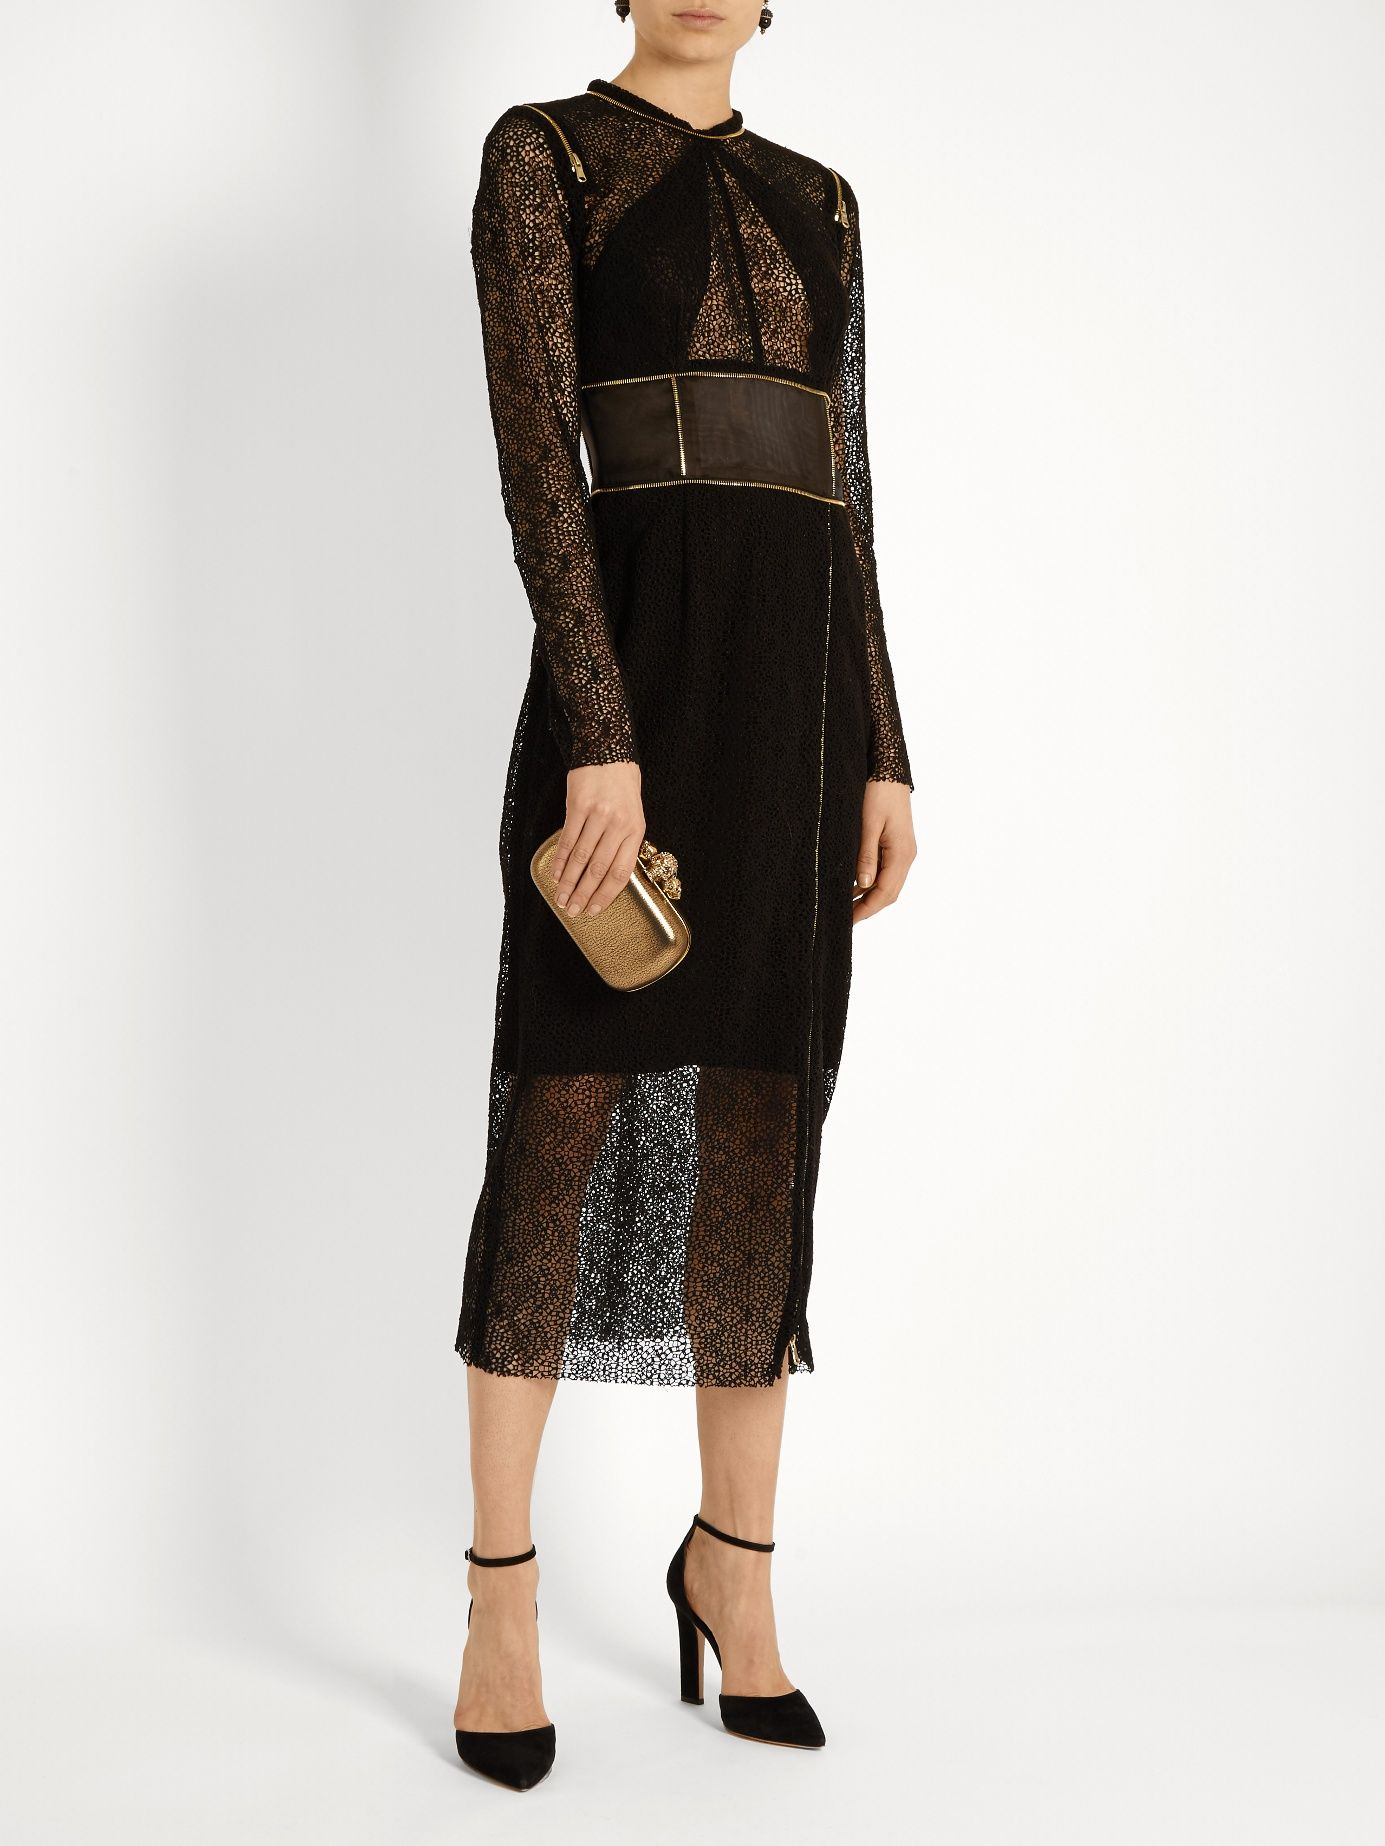 Zip-detail guipure-lace dress Sophie Theallet Ebay Online Free Shipping Purchase Cheap 2018 New ONFPO2